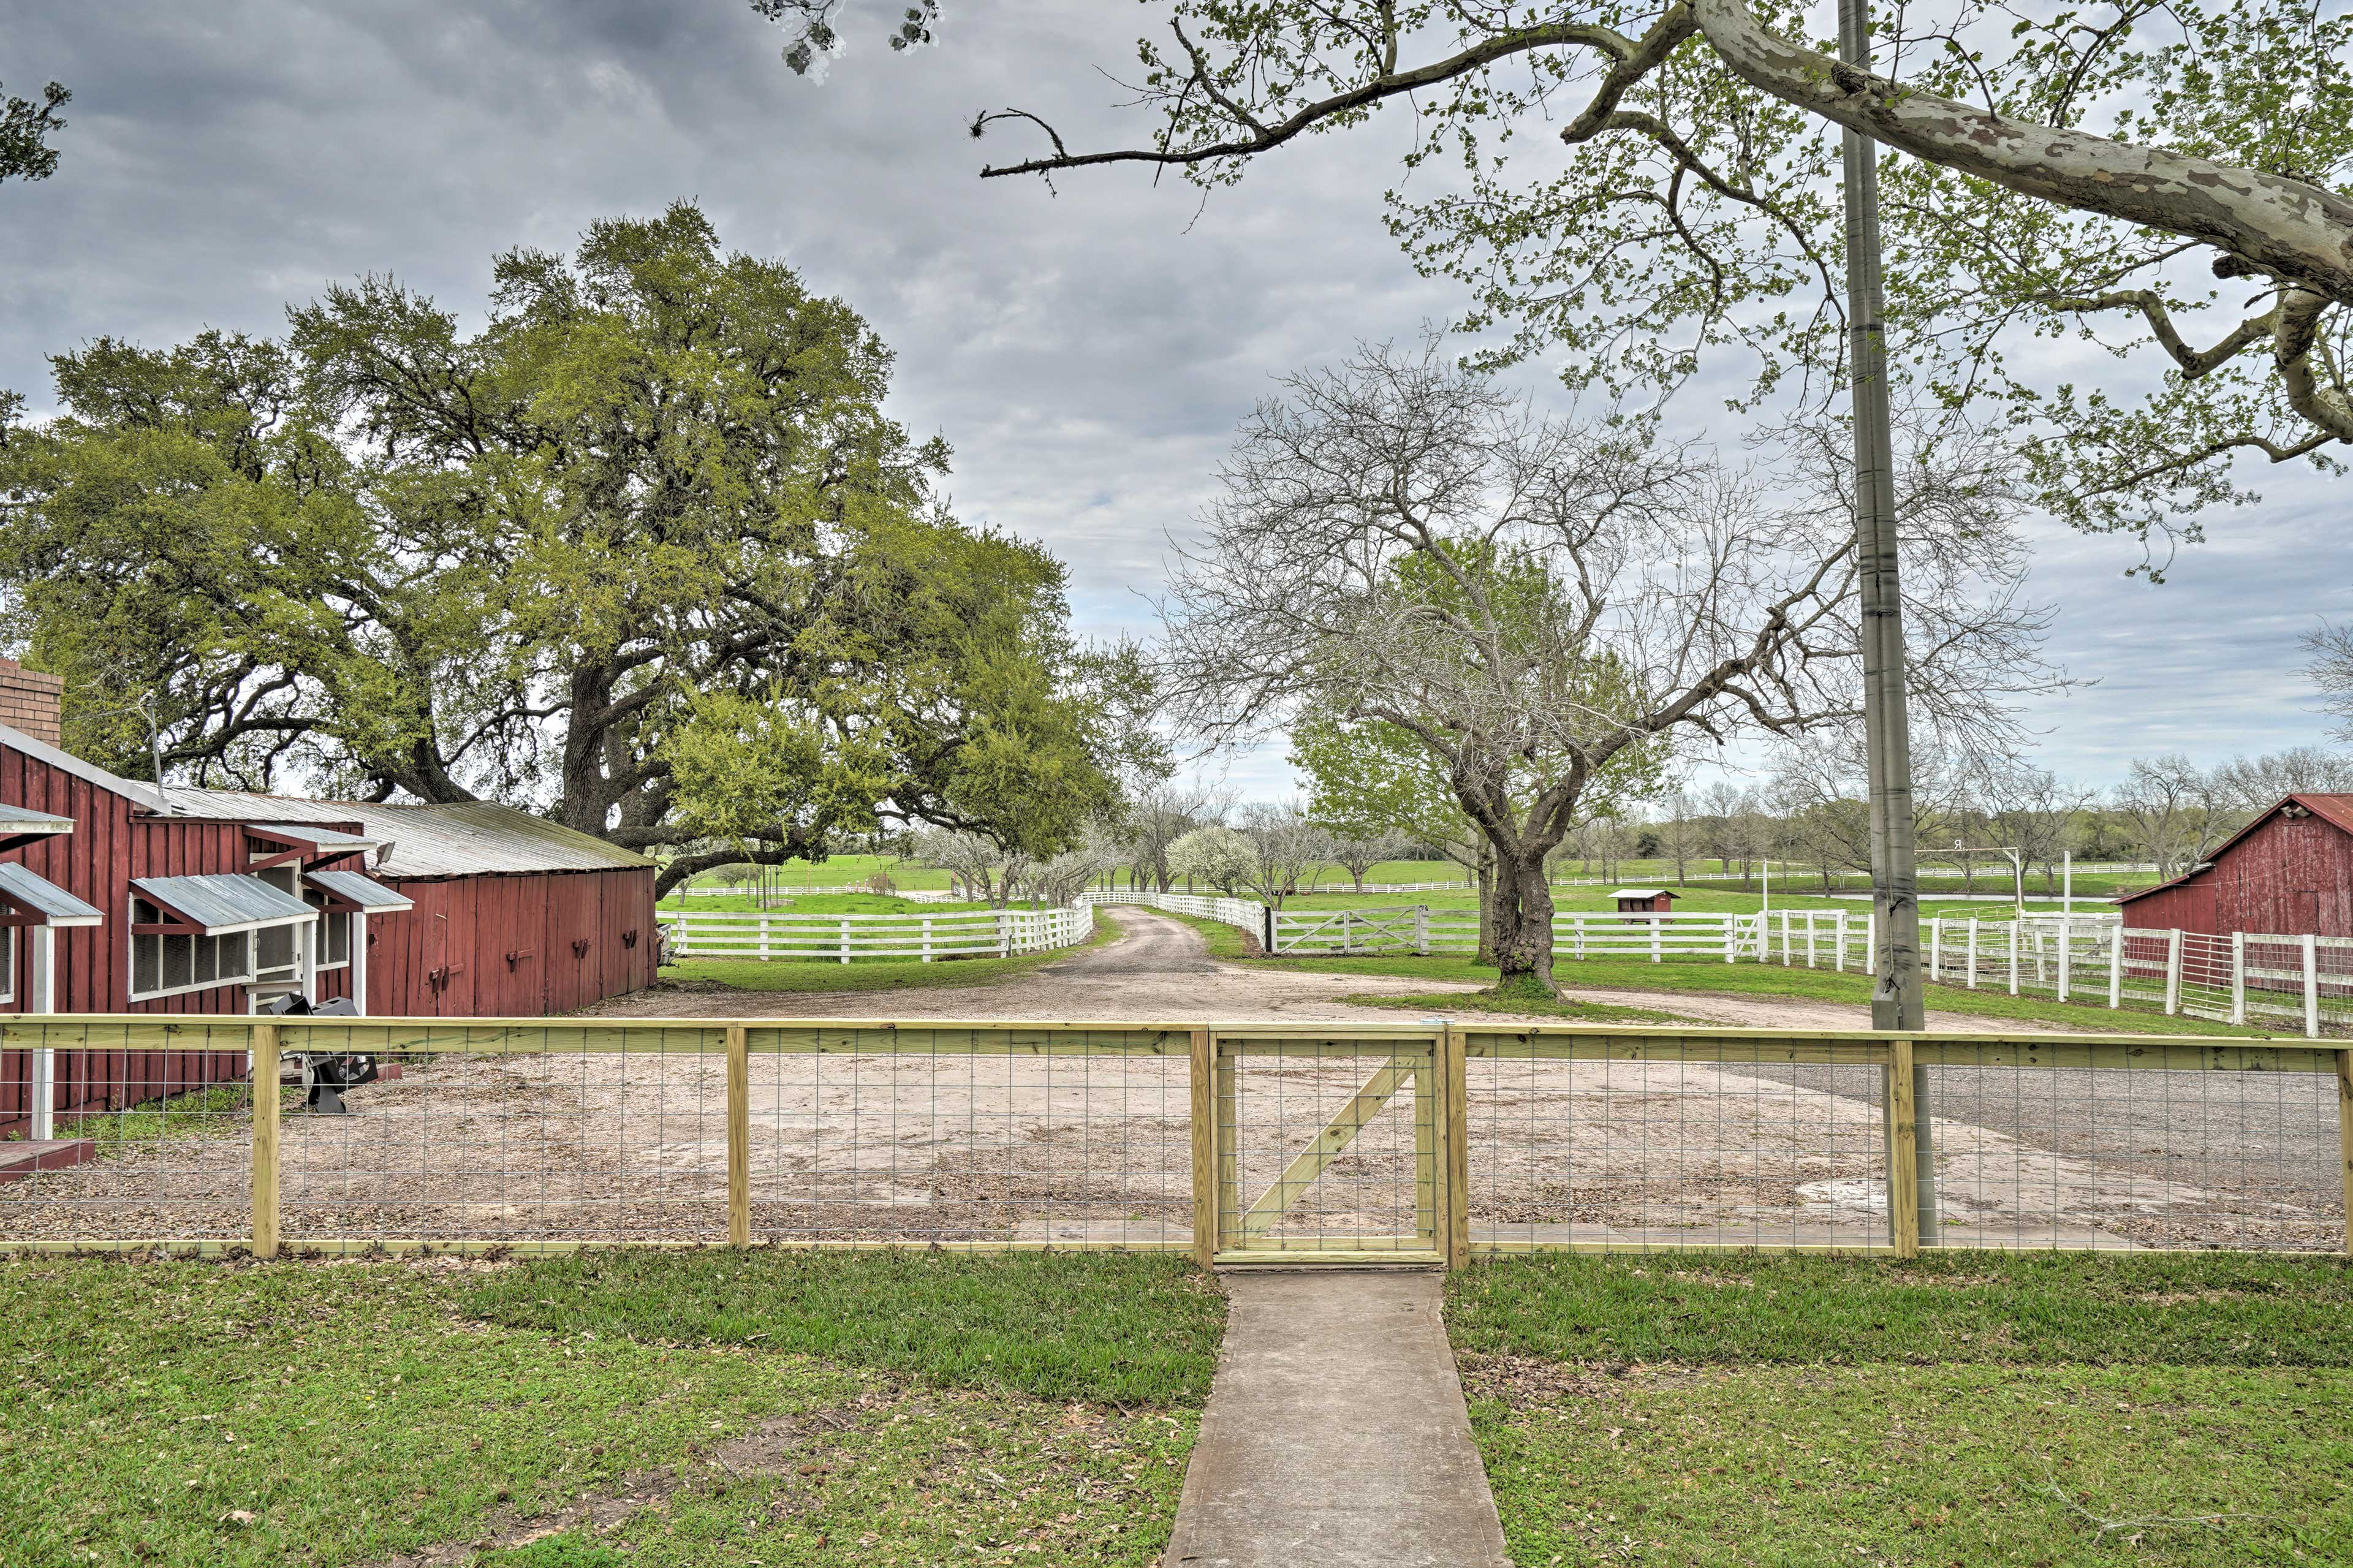 You'll love living the simple life on this beautiful Texas farm.